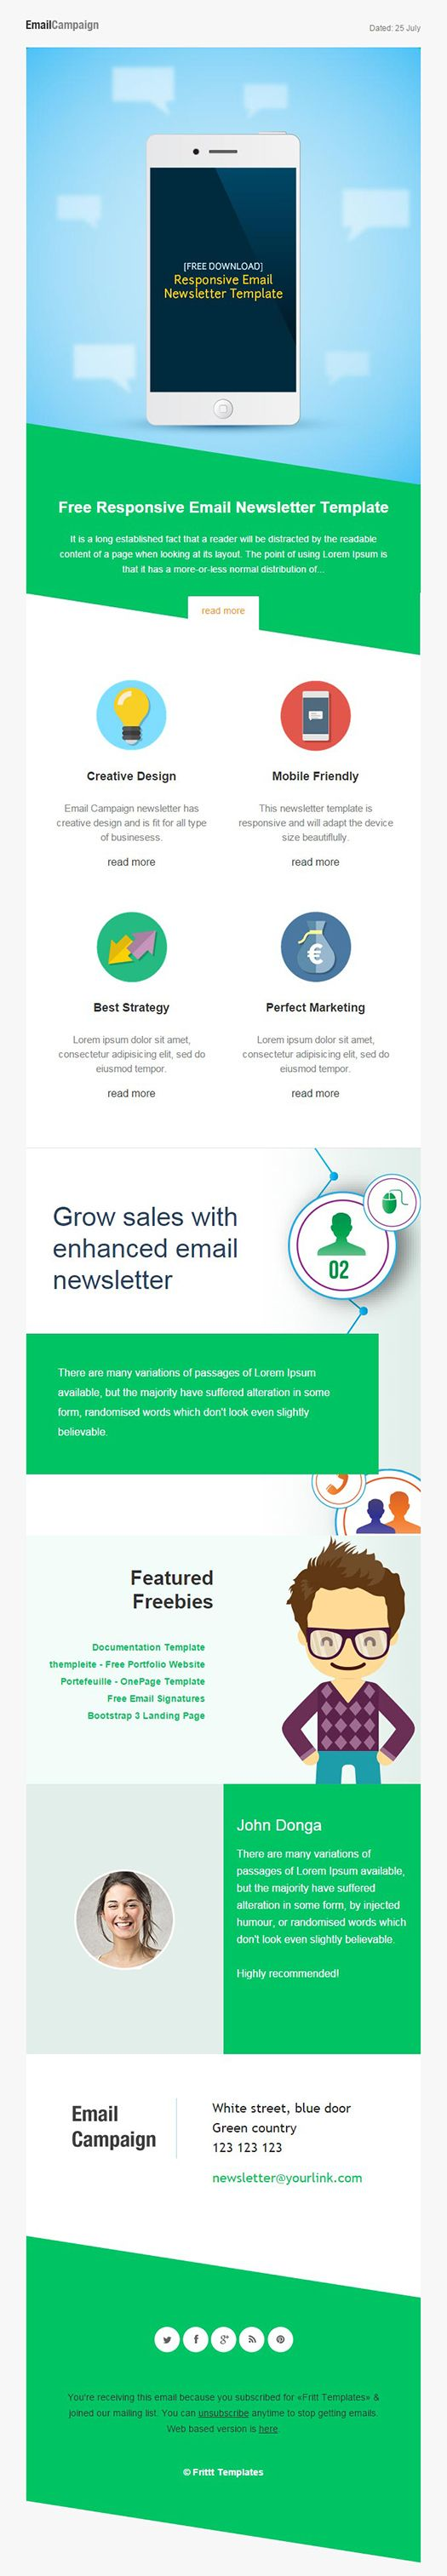 Email Campaign Is A Perfect Responsive Email Newsletter Template For